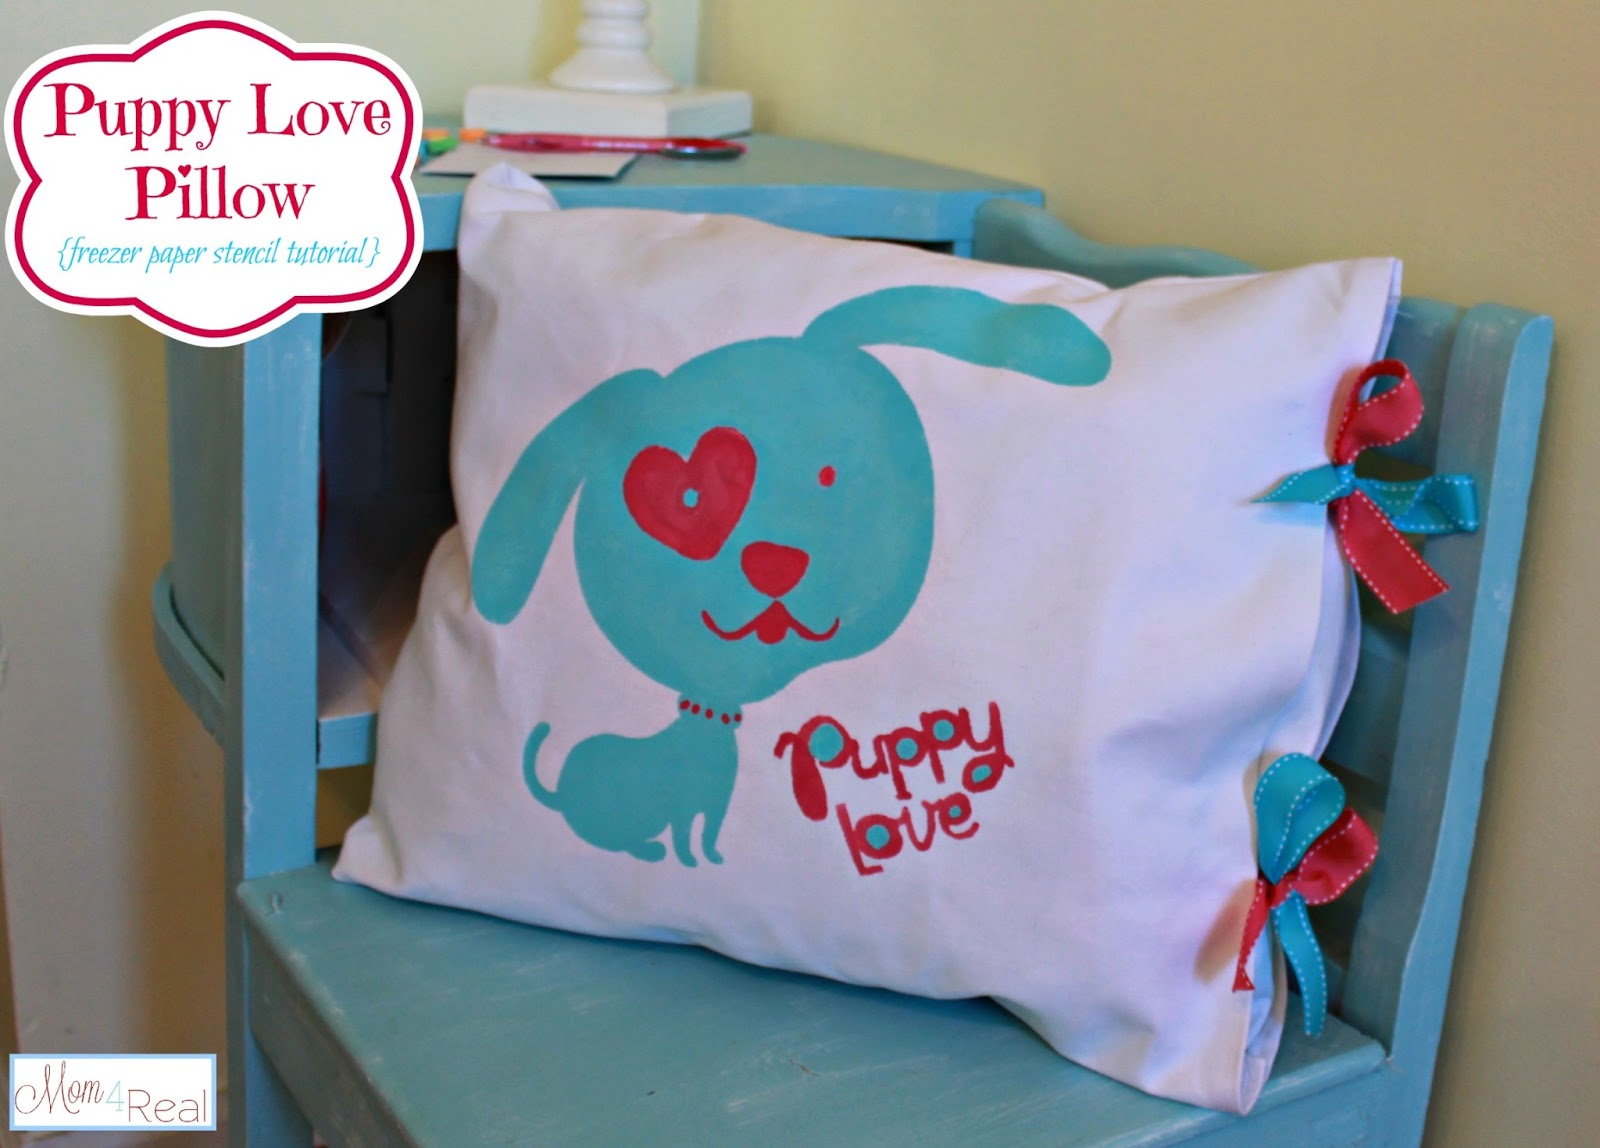 Puppy Love Pillow (Freezer Paper Stencil & Open Ended Pillow